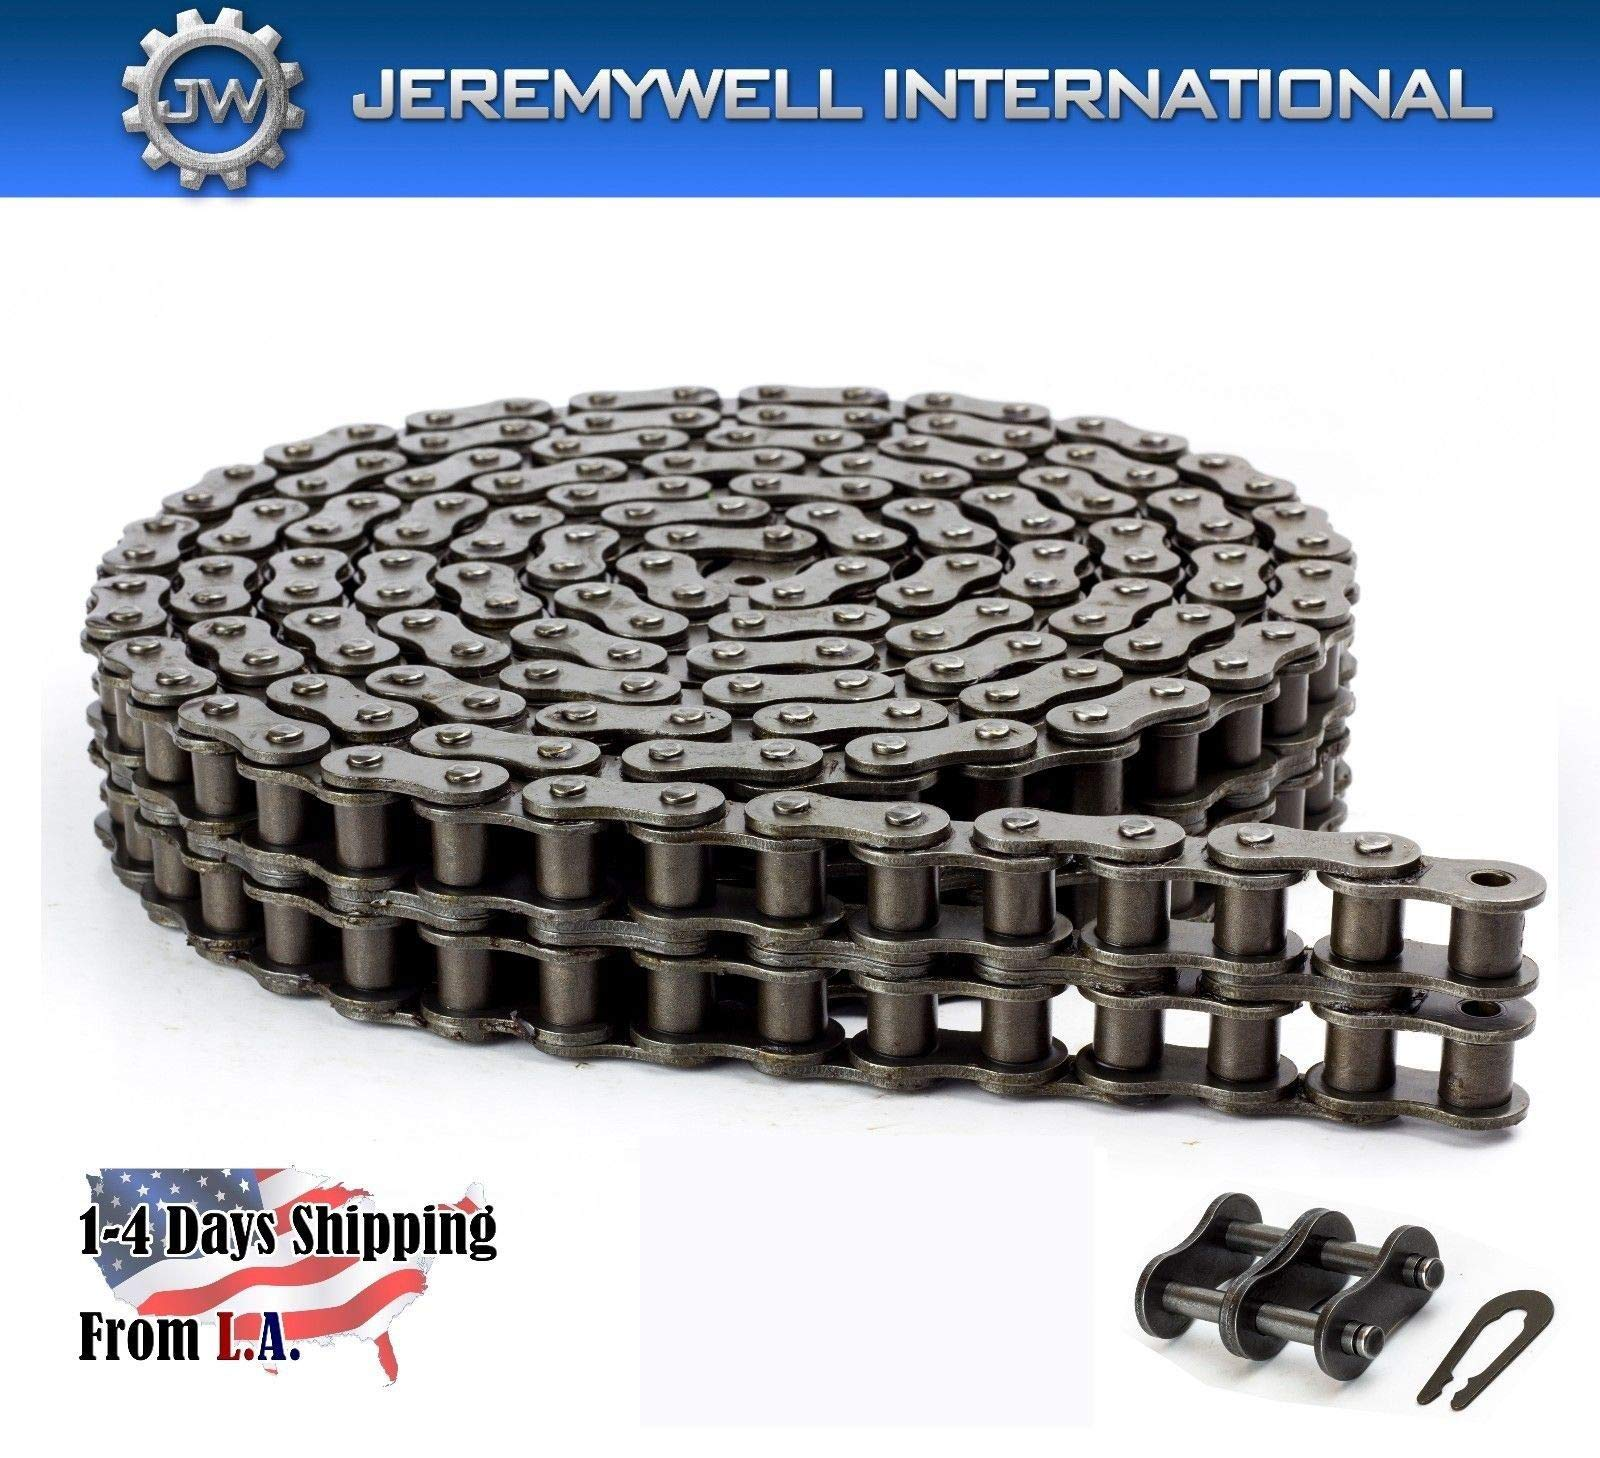 50-2 Double Strand Duplex Roller Chain 10 Feet with 1 Connecting Link